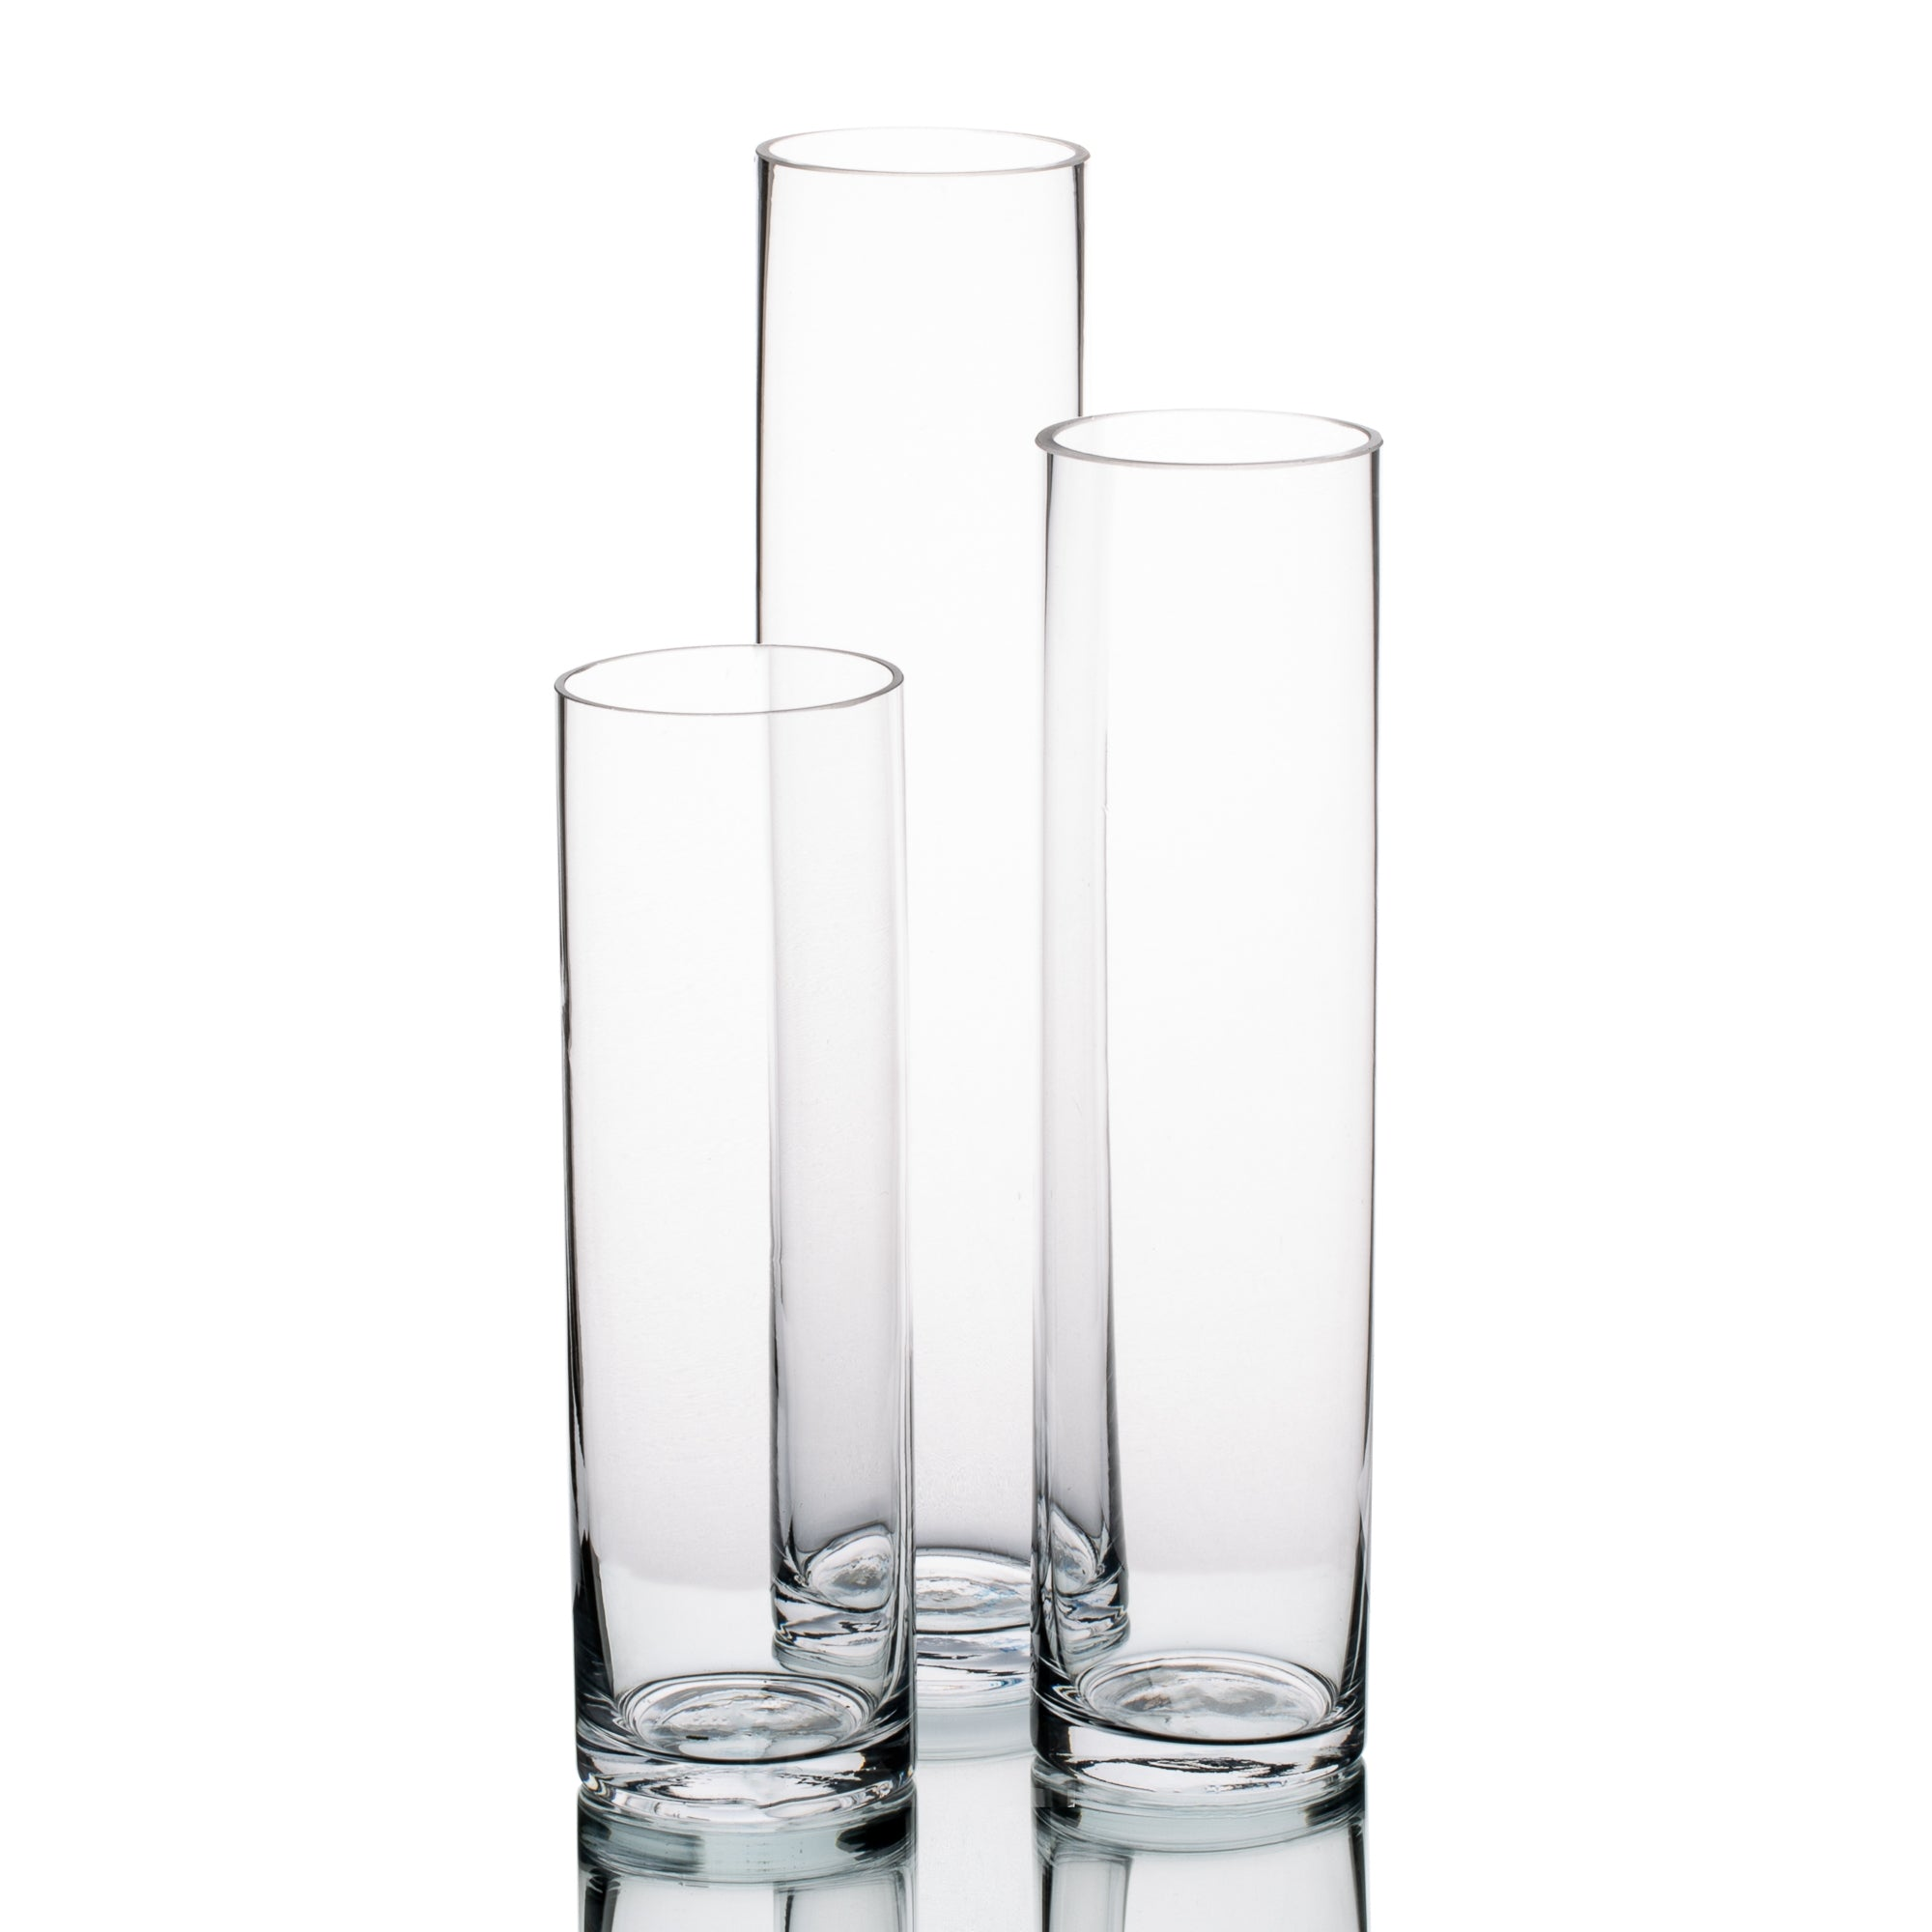 richland sloan cylinder vase 9 75 11 75 13 75 set of 24